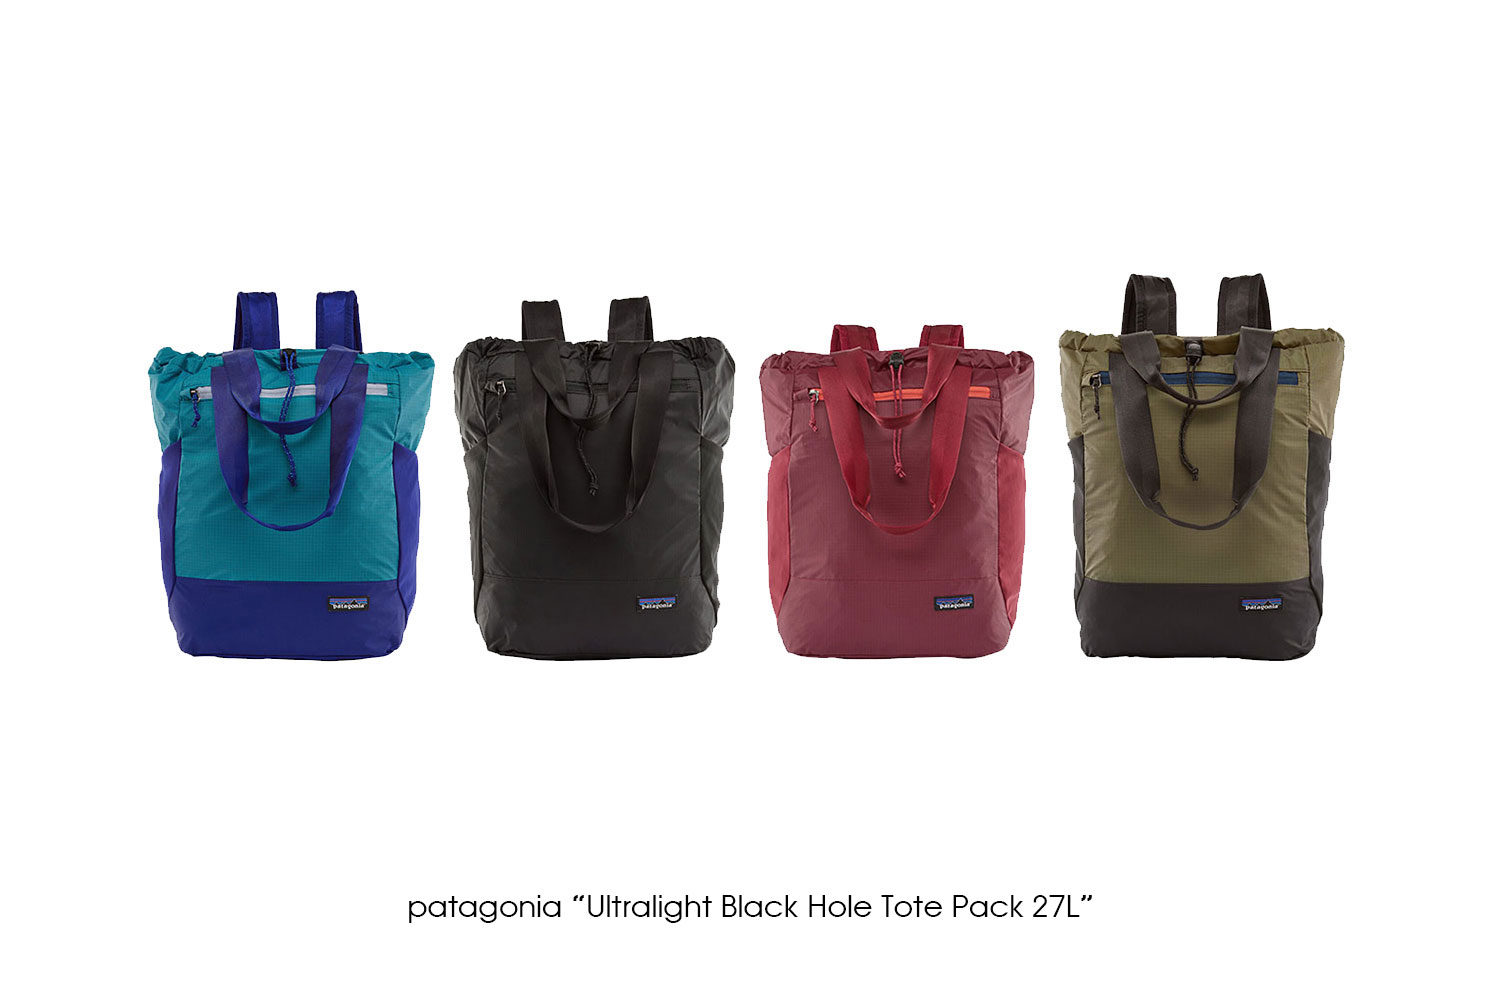 """patagonia """"Ultralight Black Hole Tote Pack 27L"""""""